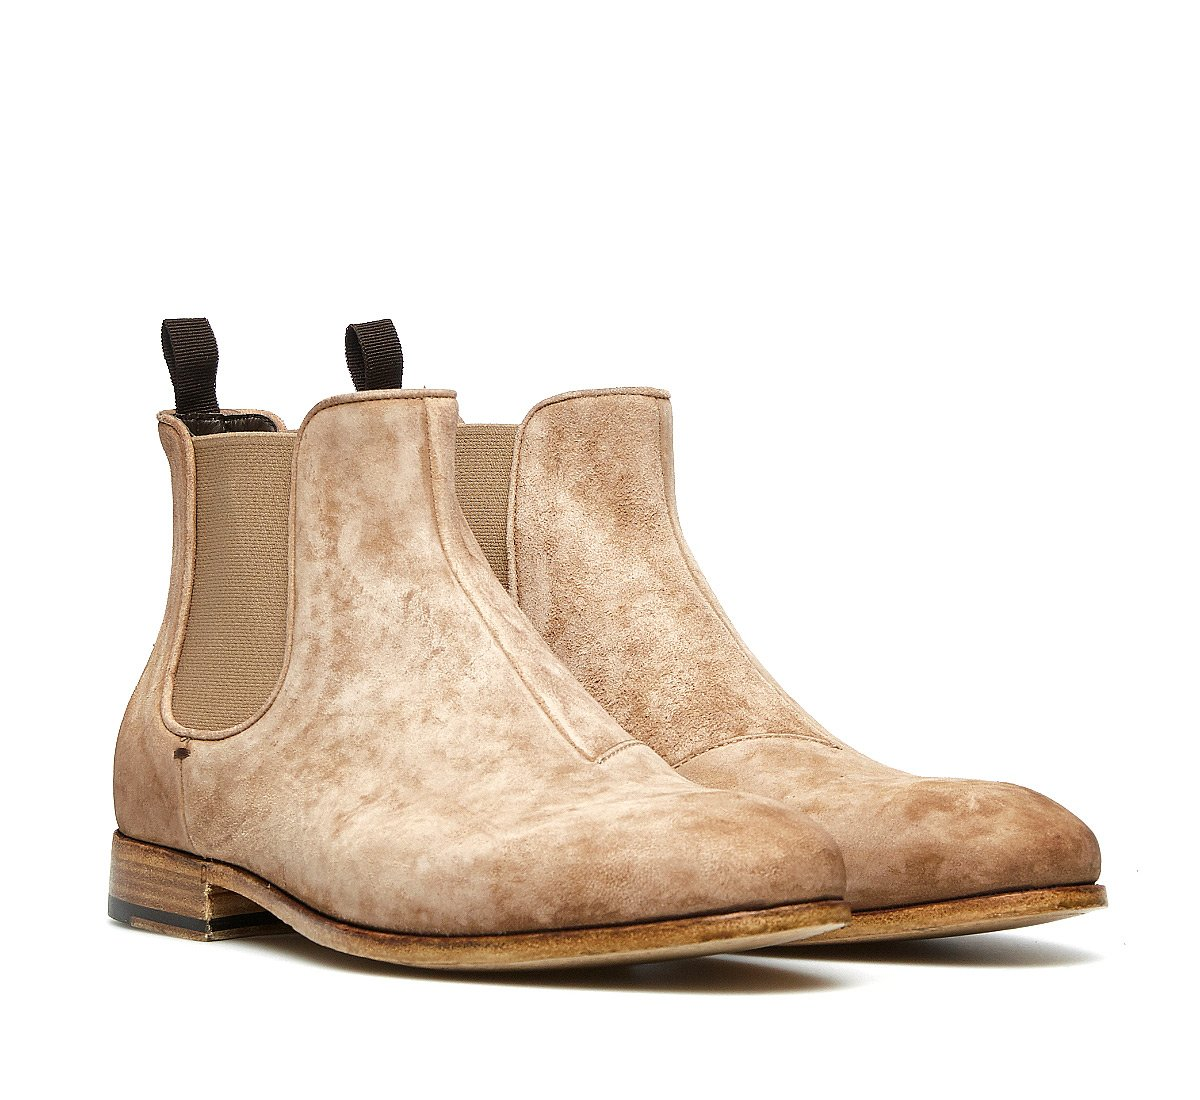 Barracuda Beatles boots in soft suede calfskin